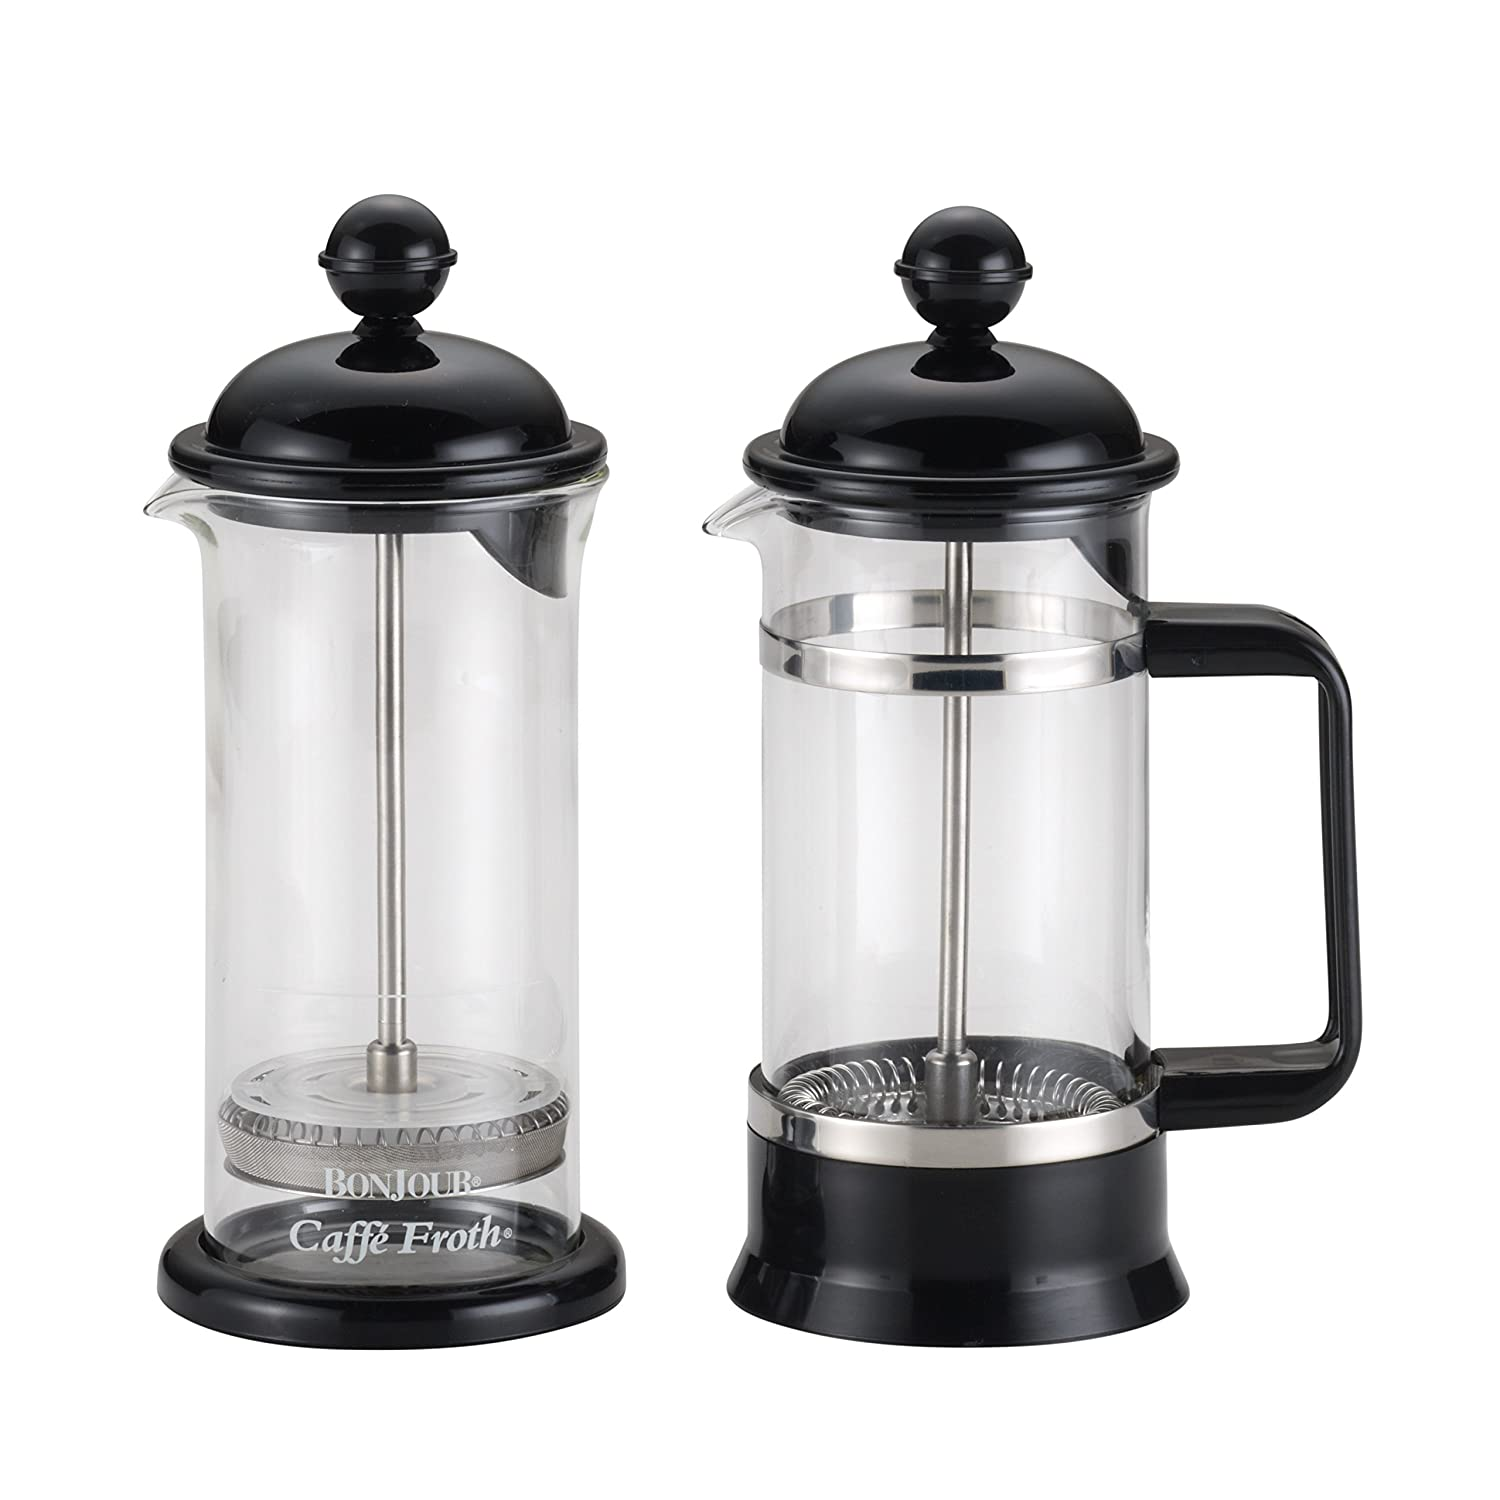 BonJour 53521 3-Cup 12.7-Oz. La Petite Frother Set Borosilicate Glass French Press, 12.7 oz, Black